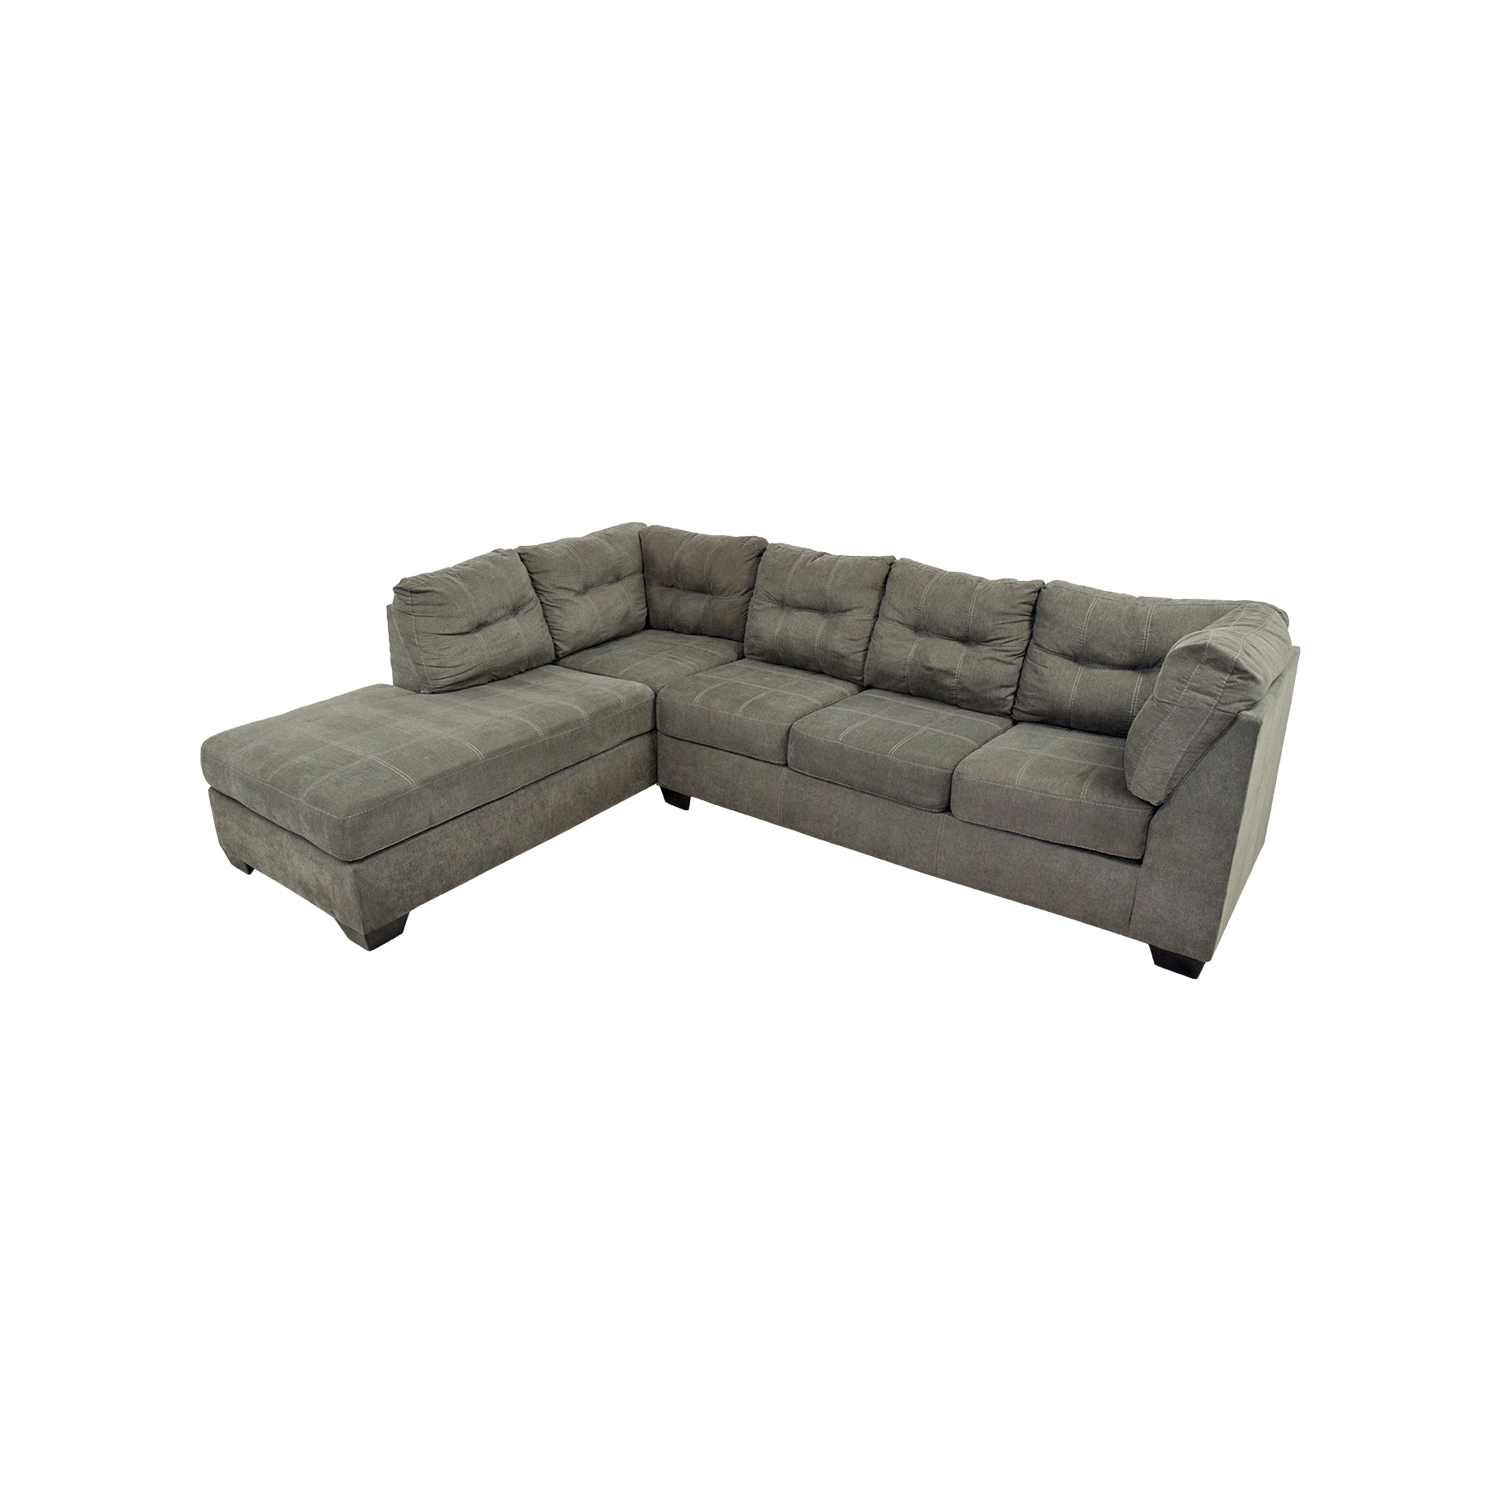 buy Mercury Row Cornett Charcoal Sectional Mercury Row Sofas